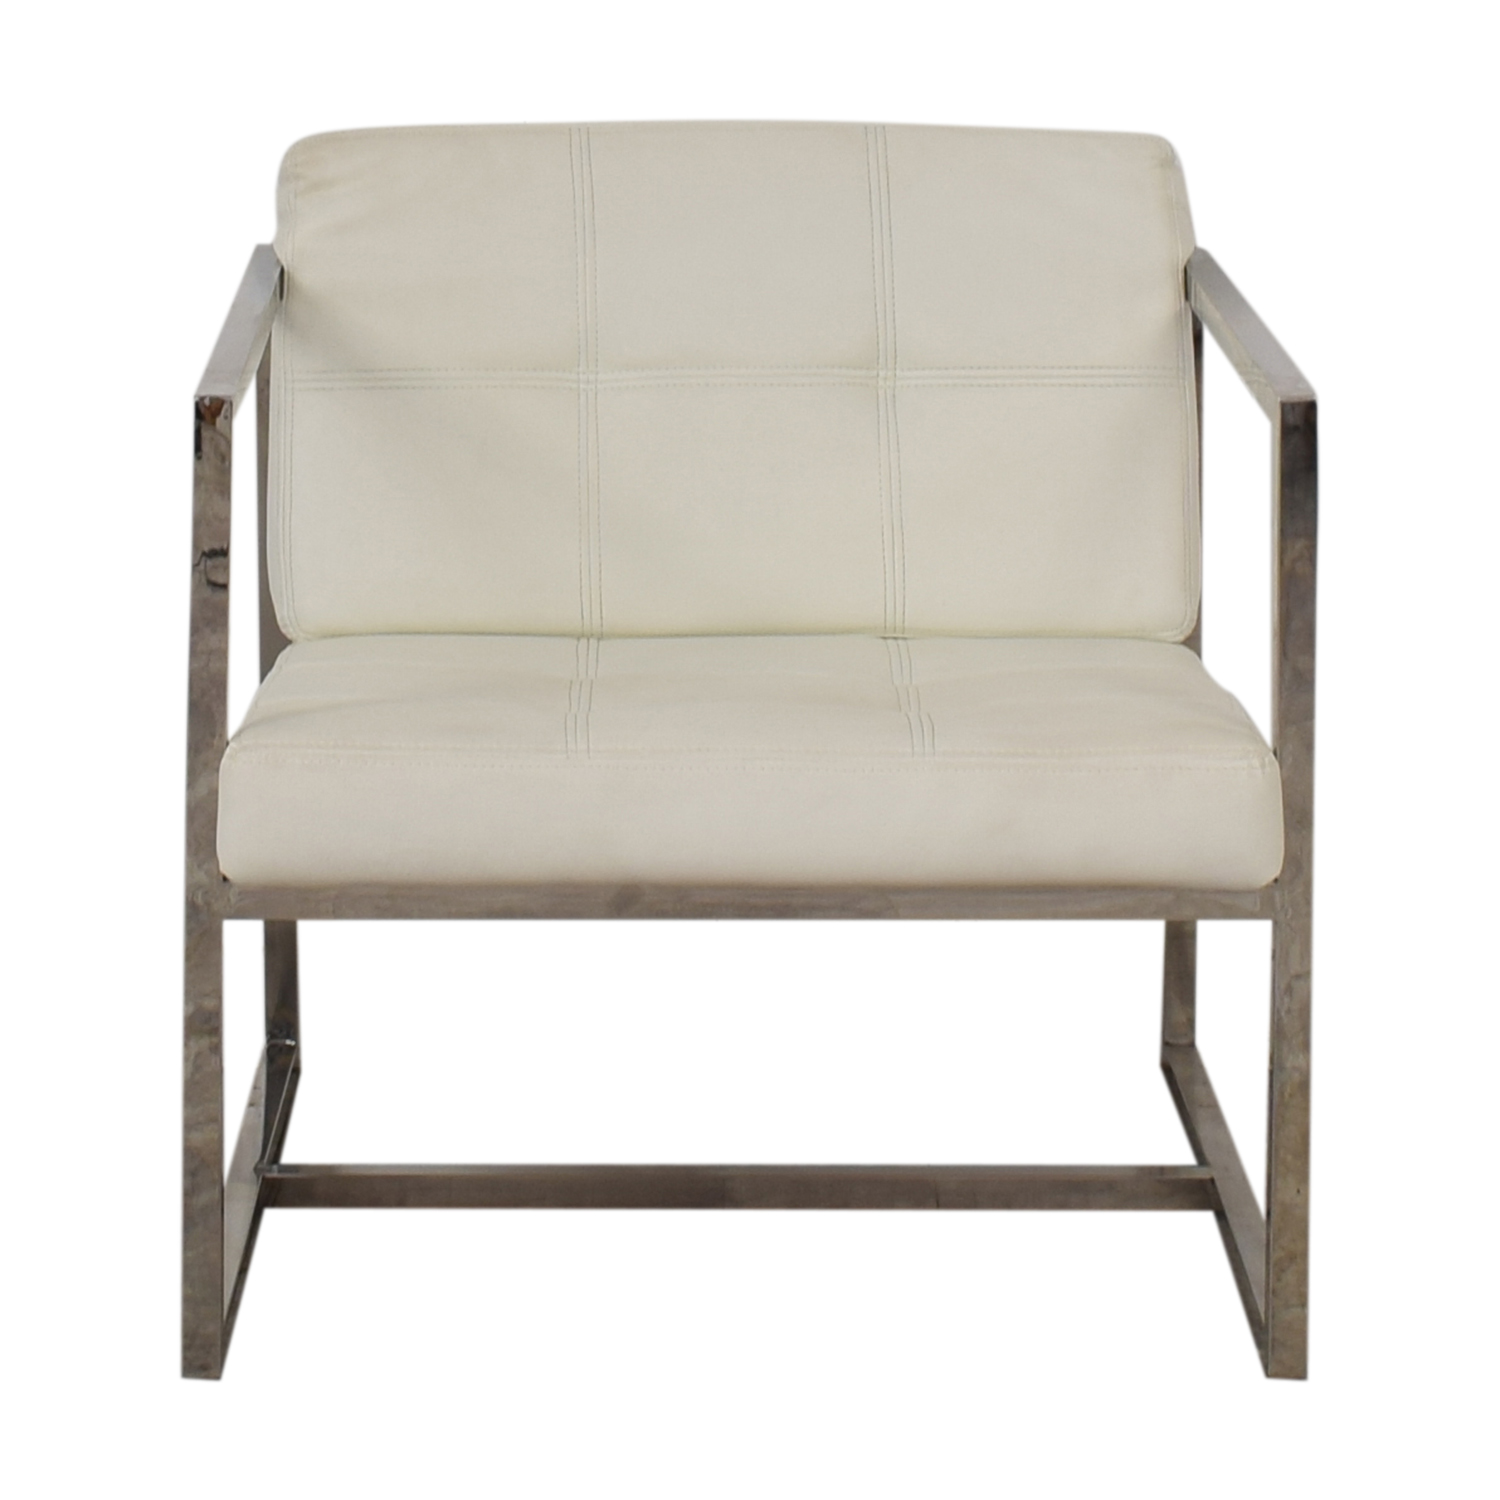 Modway Modway Hover White Lounge Chair Accent Chairs